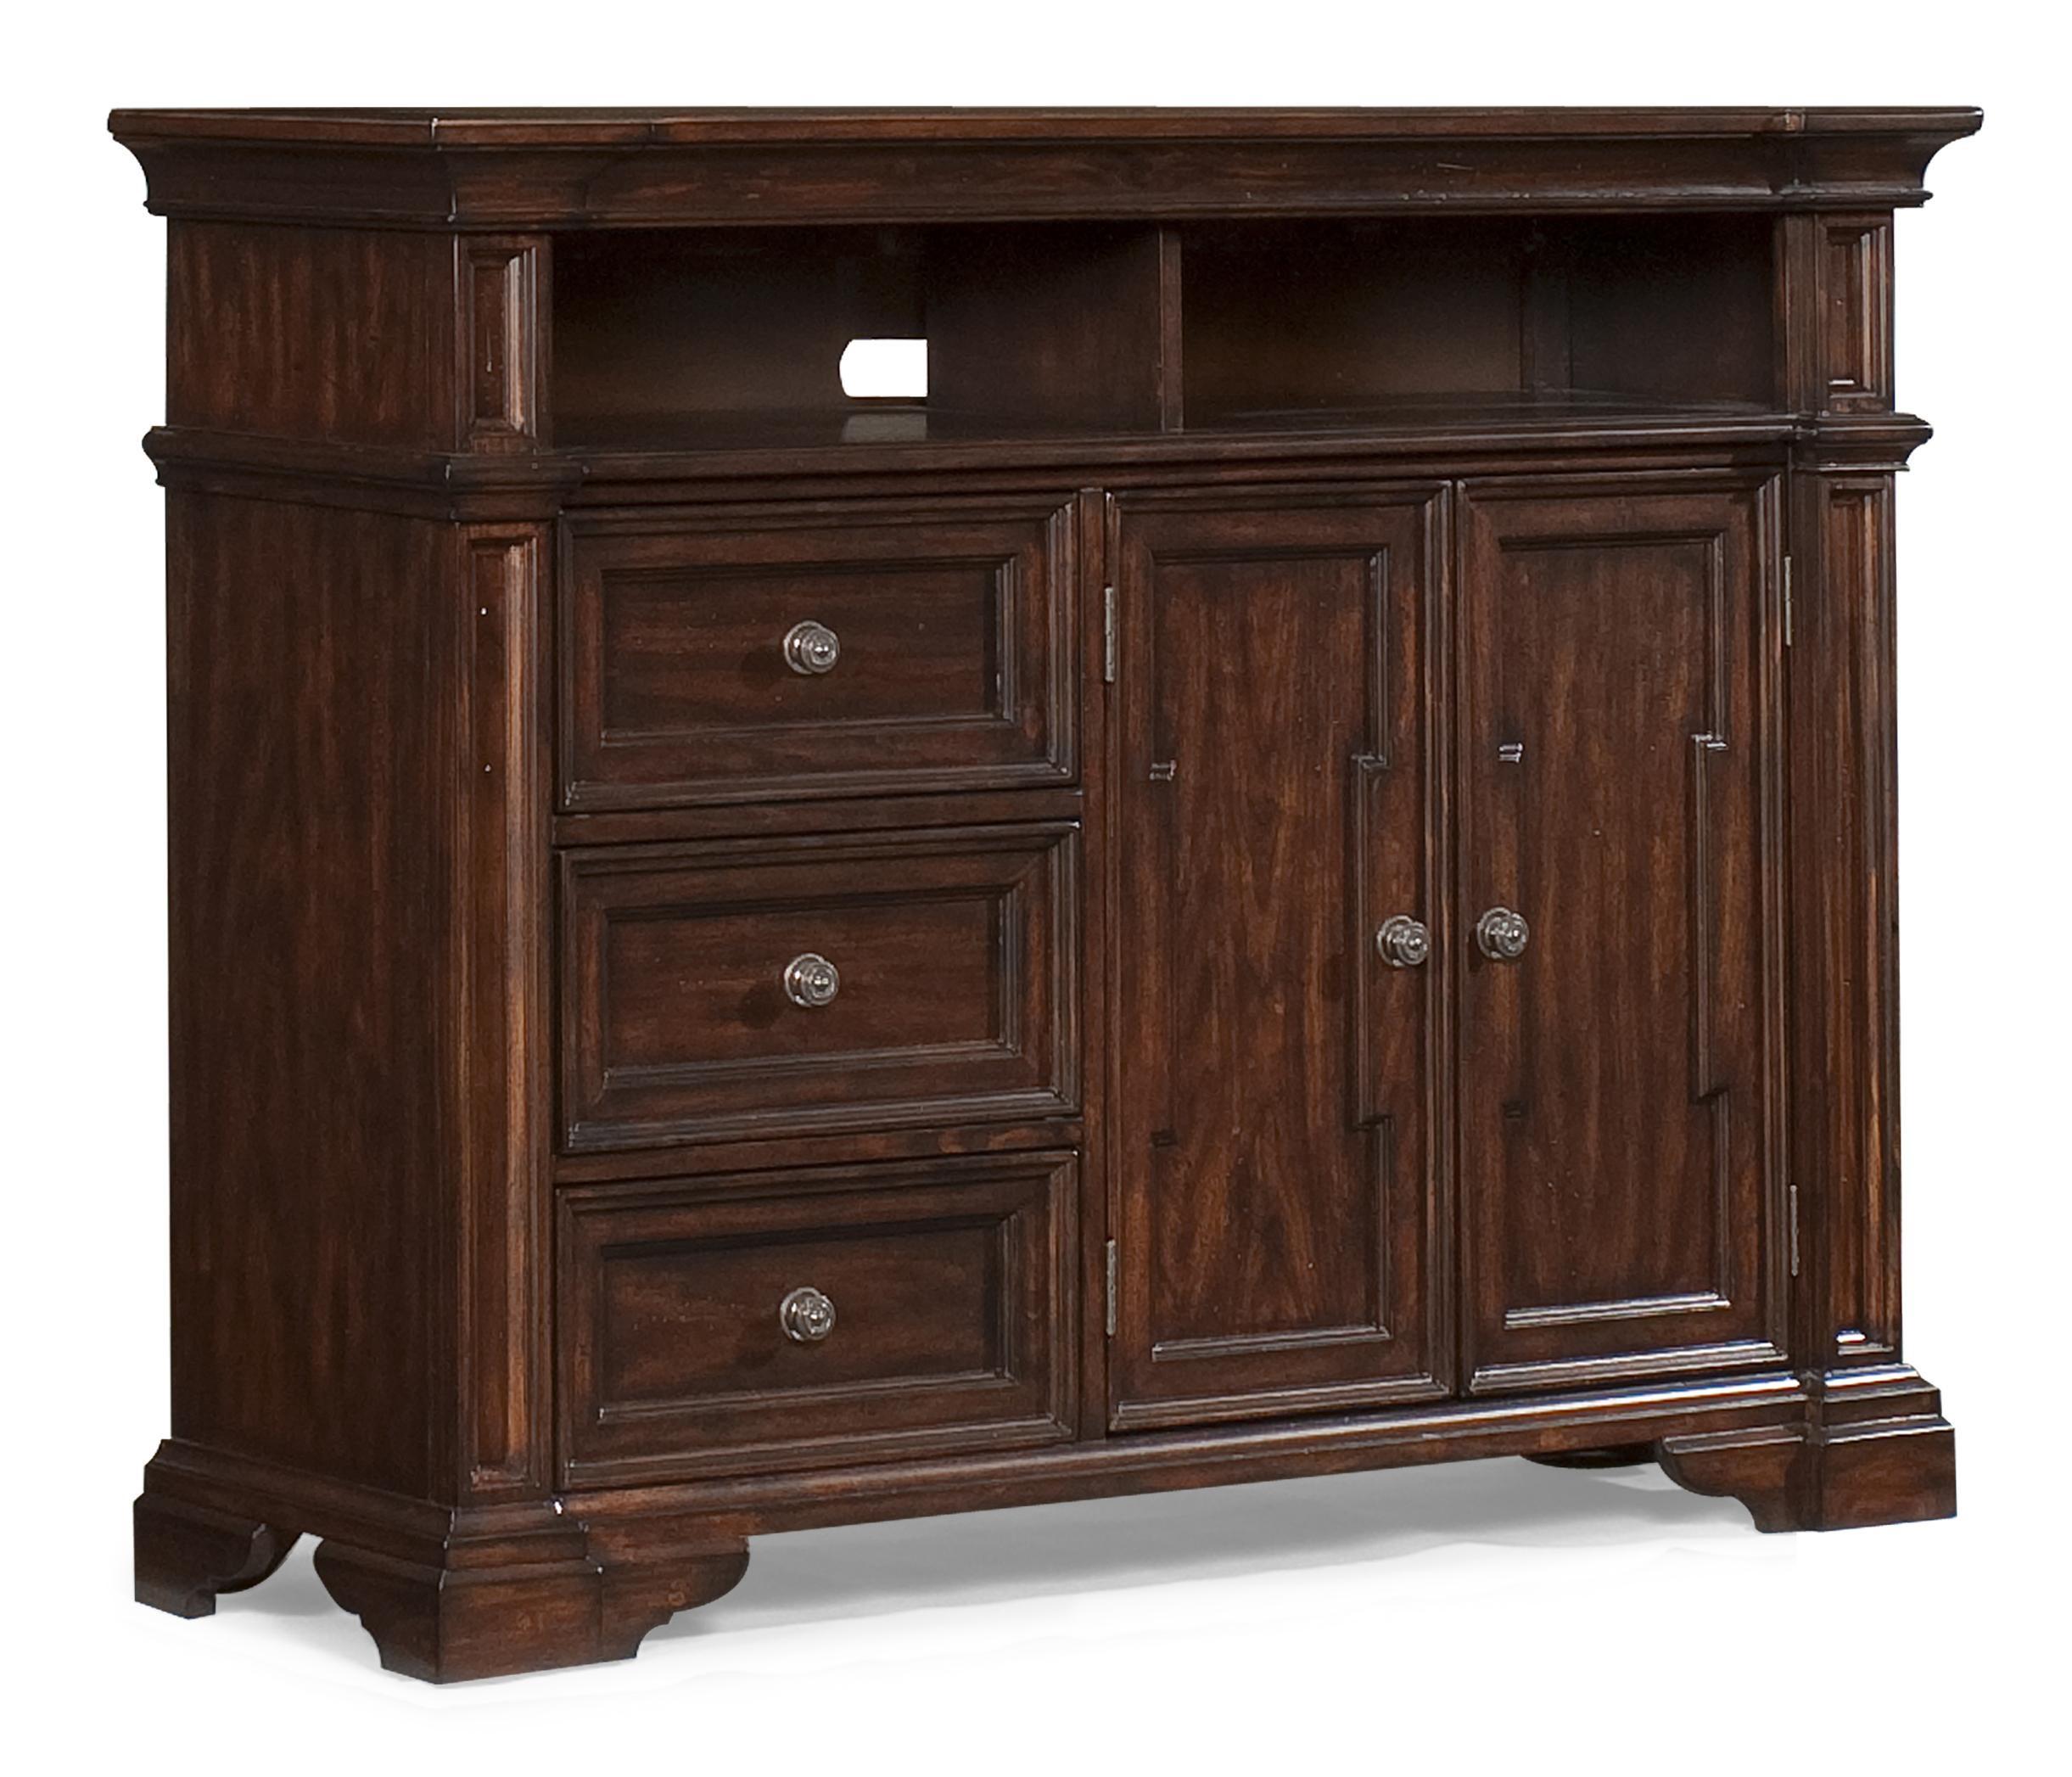 Klaussner International San Marcos Media Chest with Open Compartments, Drawers and Doors - Ivan ...